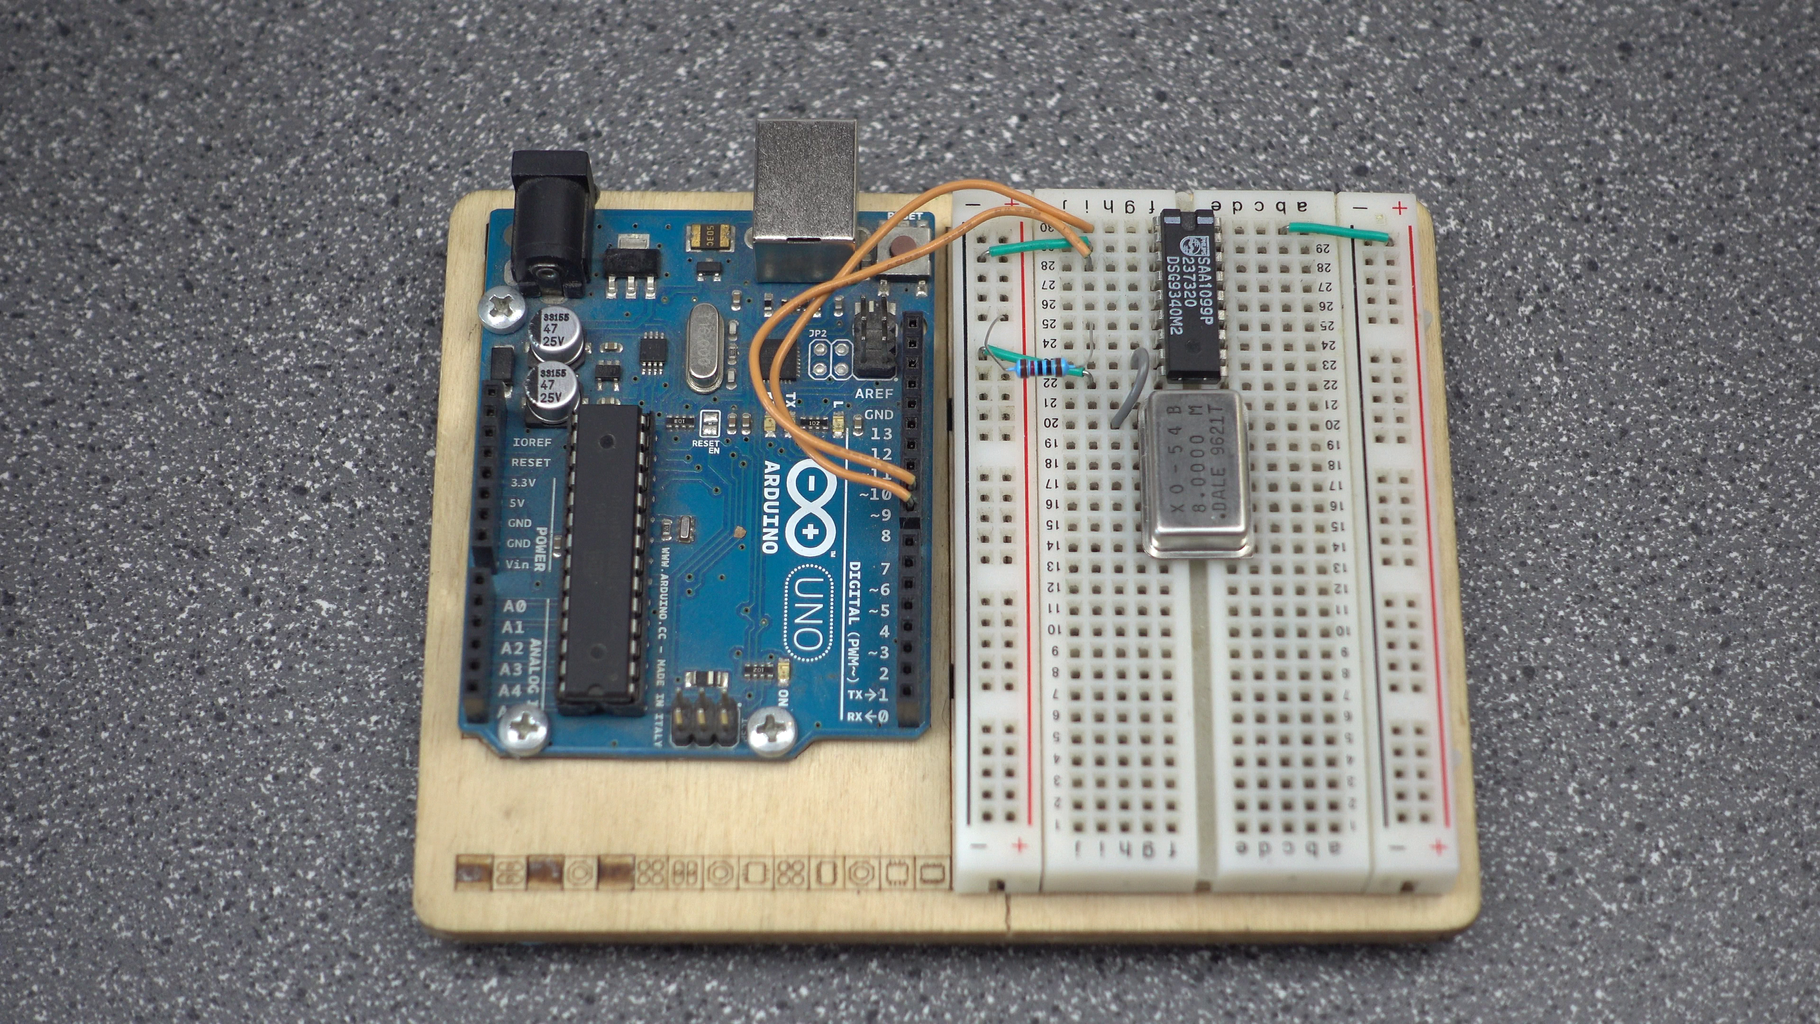 Wiring - Iref and Chip Interface